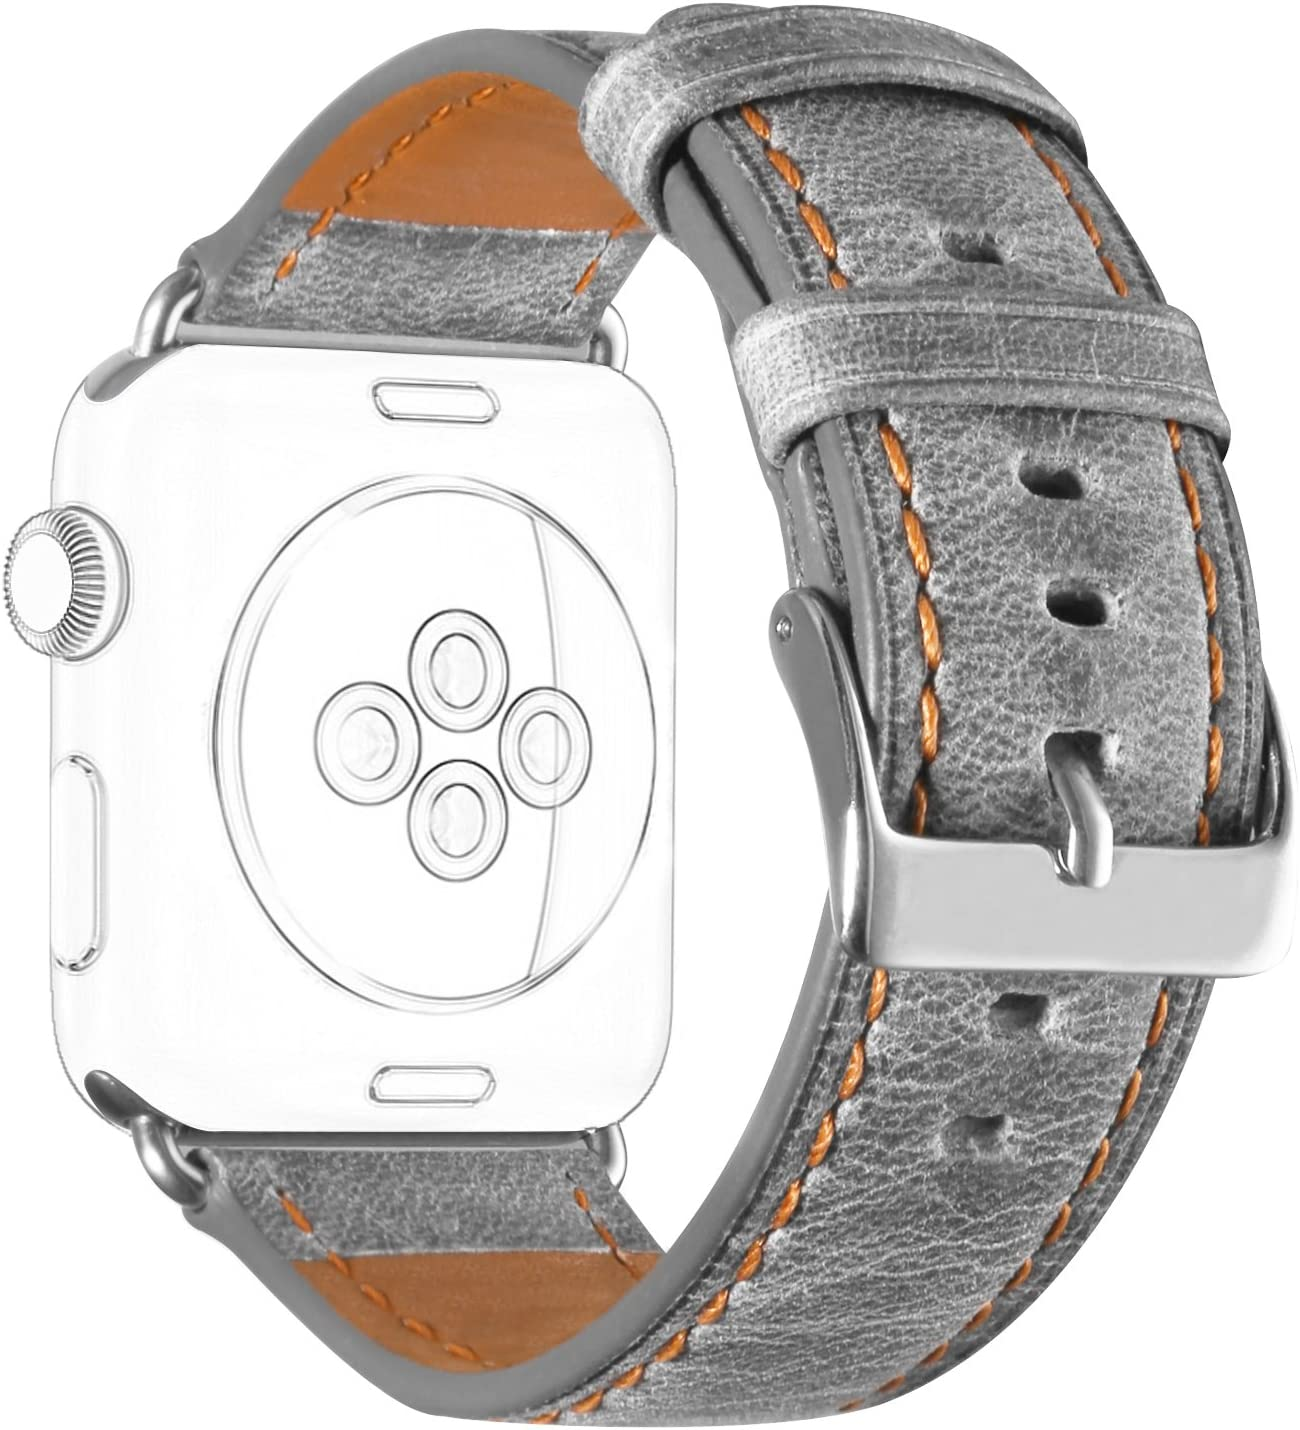 DaGeLon Compatible with Apple Watch Band 44mm Series 6 Series 5 Series 4 42mm Series 3 2 1, Comfortable Leather Watchband Retro Replacement Strap Durable Wristband for iWatch SE, Sport Edition, Gray